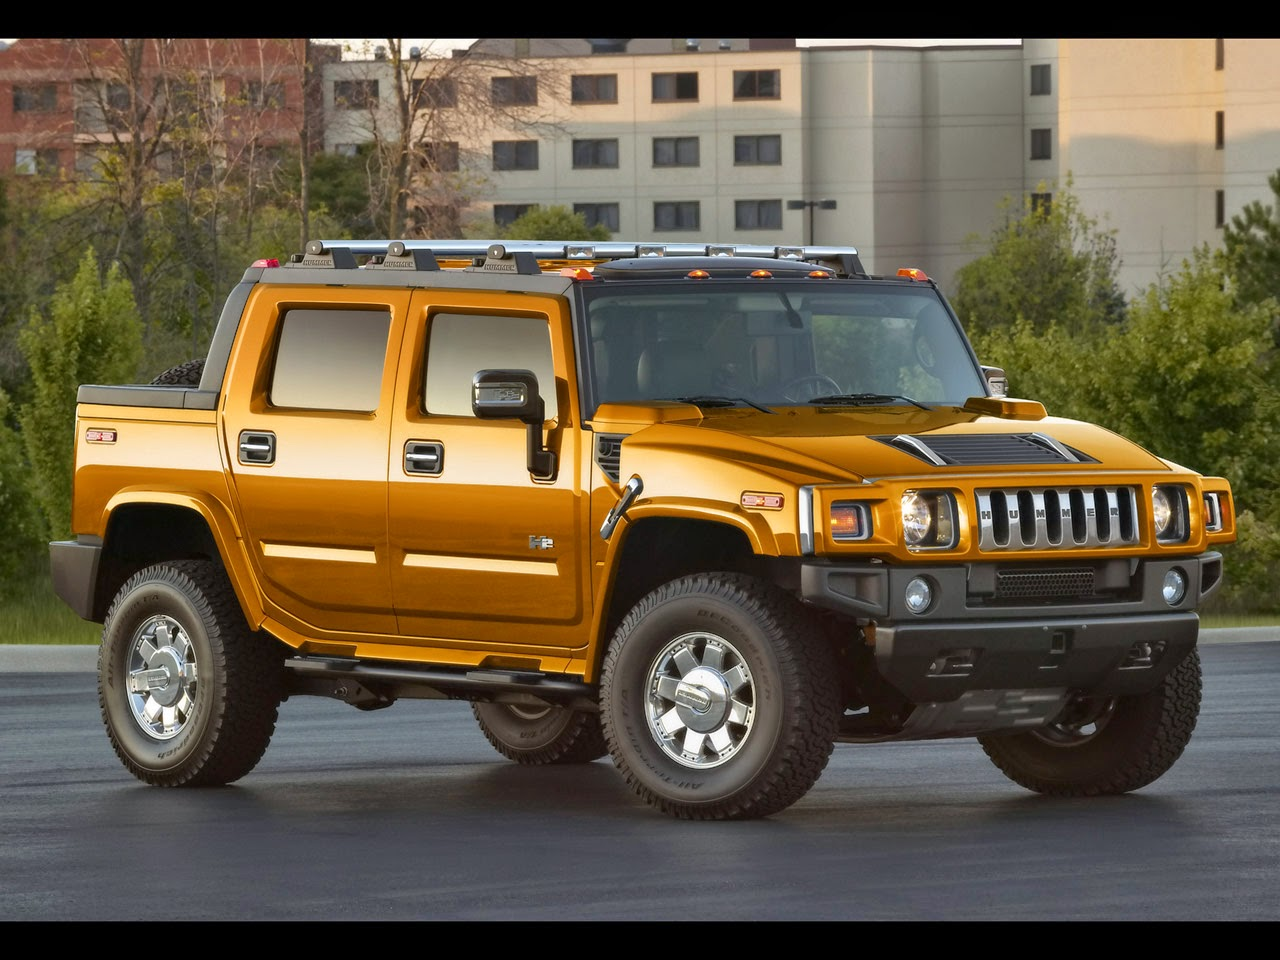 2009 Hummer H2 Sut Used Auto Review Pickup Truck 2015